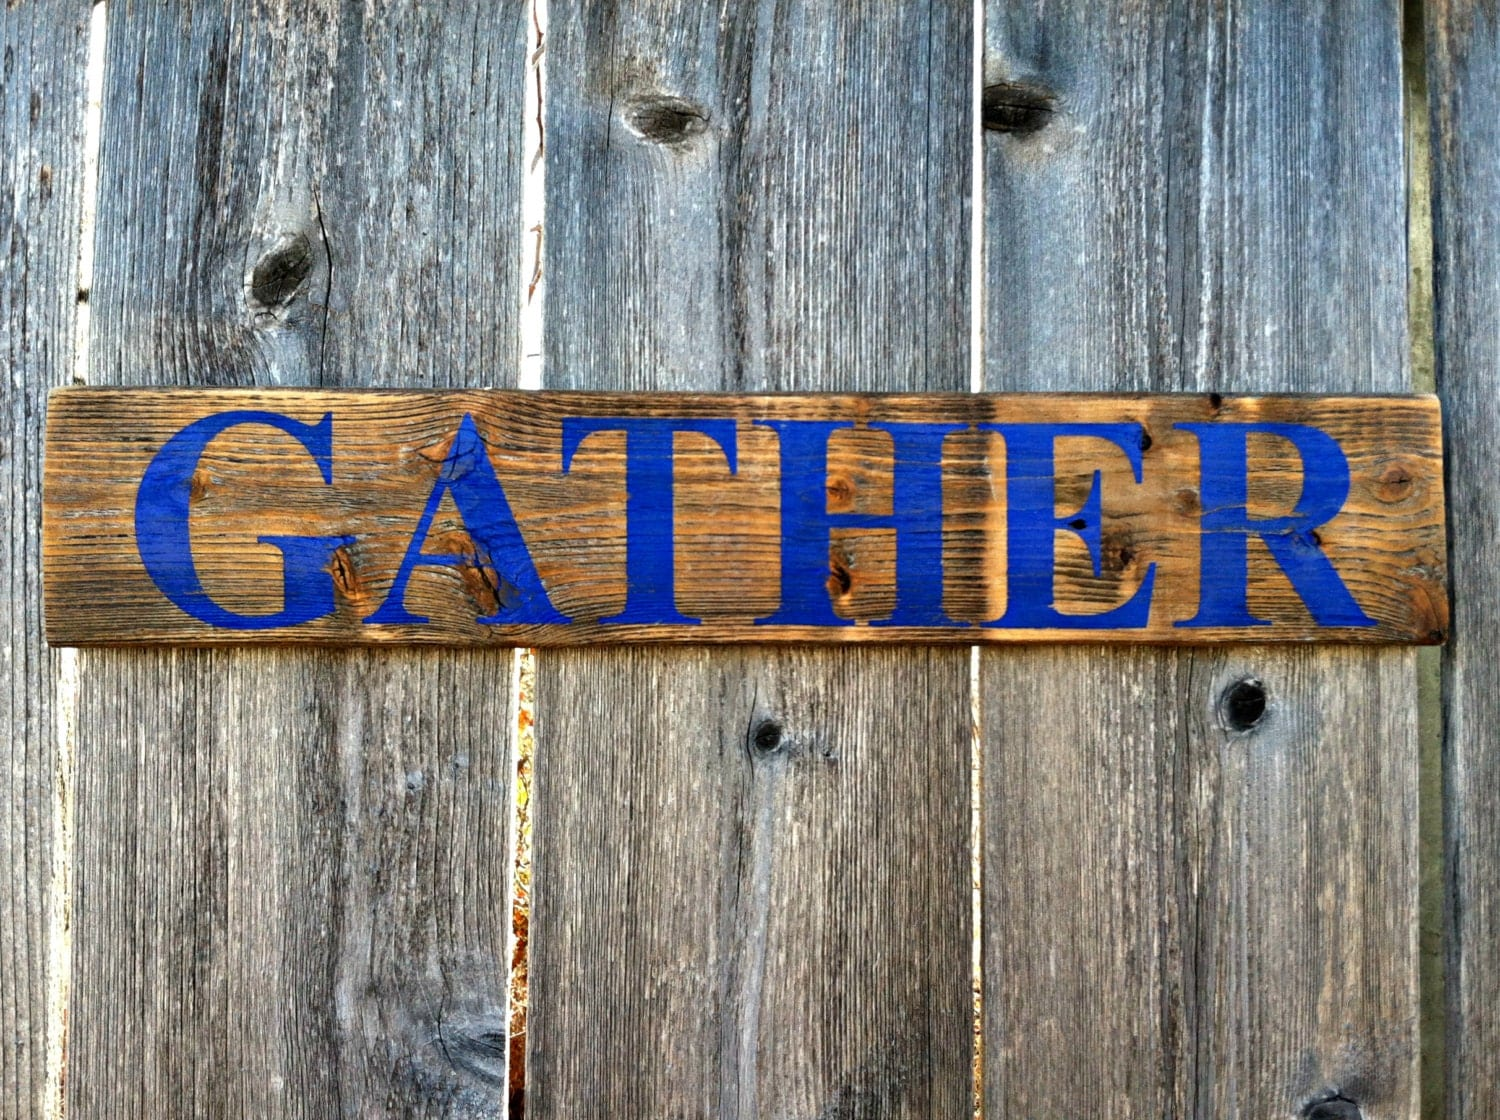 Homemade Rustic Wall Decor : Rustic handmade wall decor gather wooden sign in natural